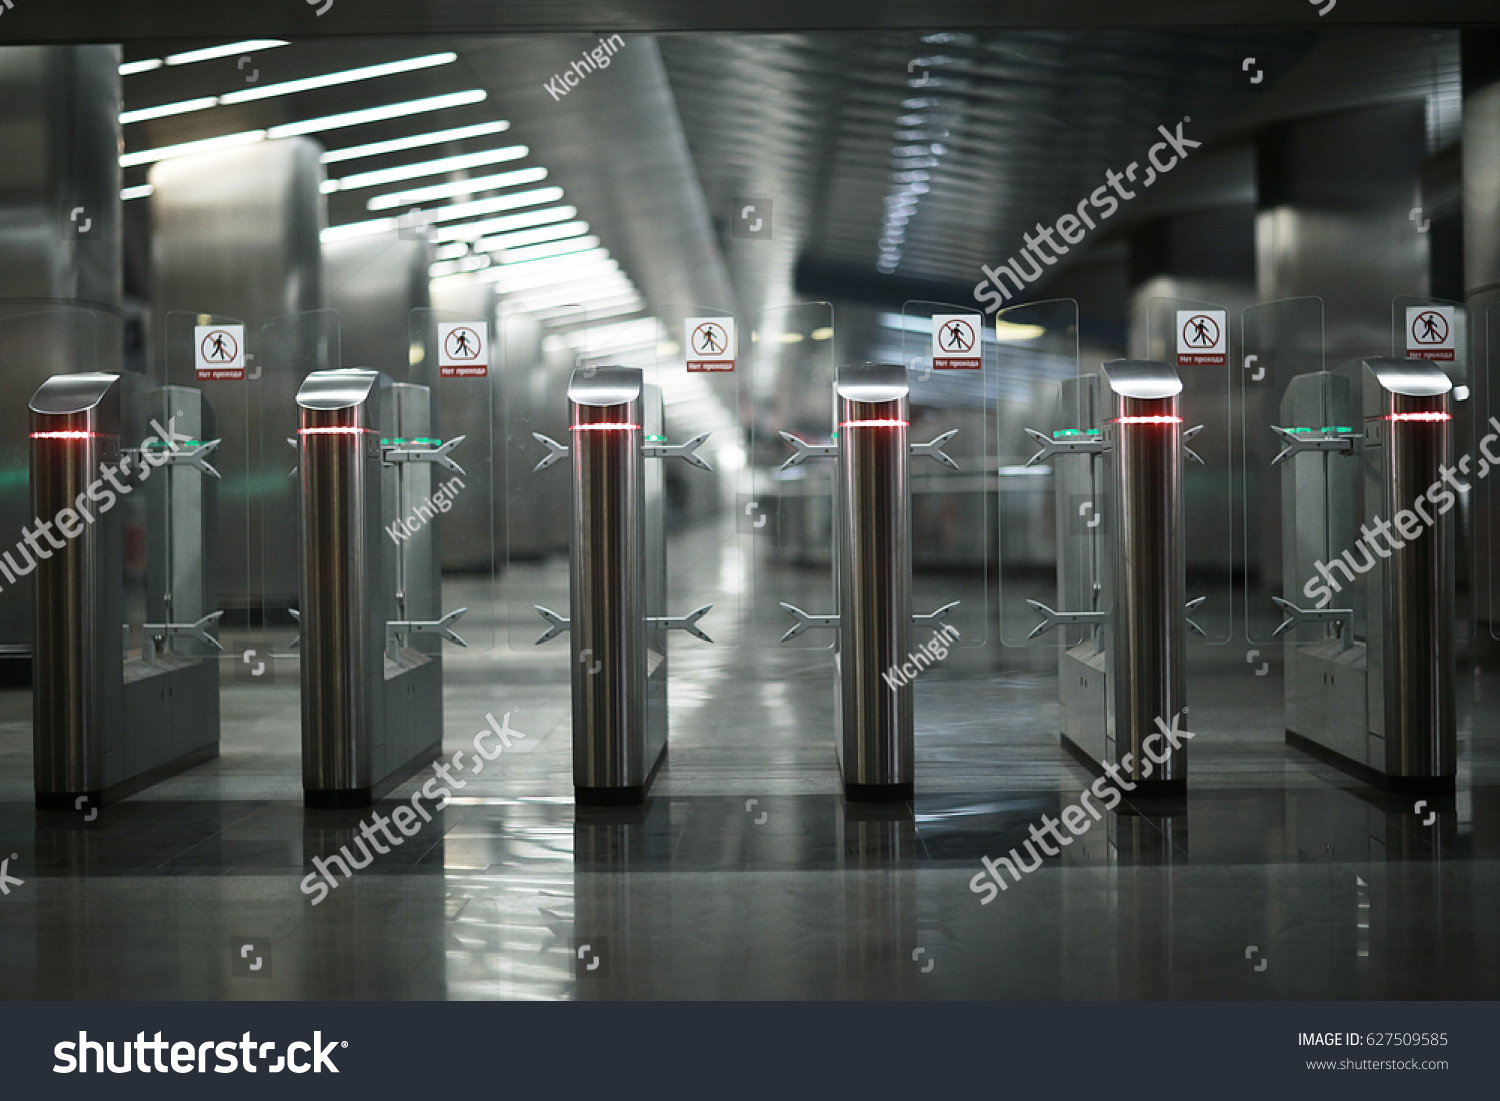 stock-photo-checkpoint-in-the-gray-metro-at-the-entrance-627509585